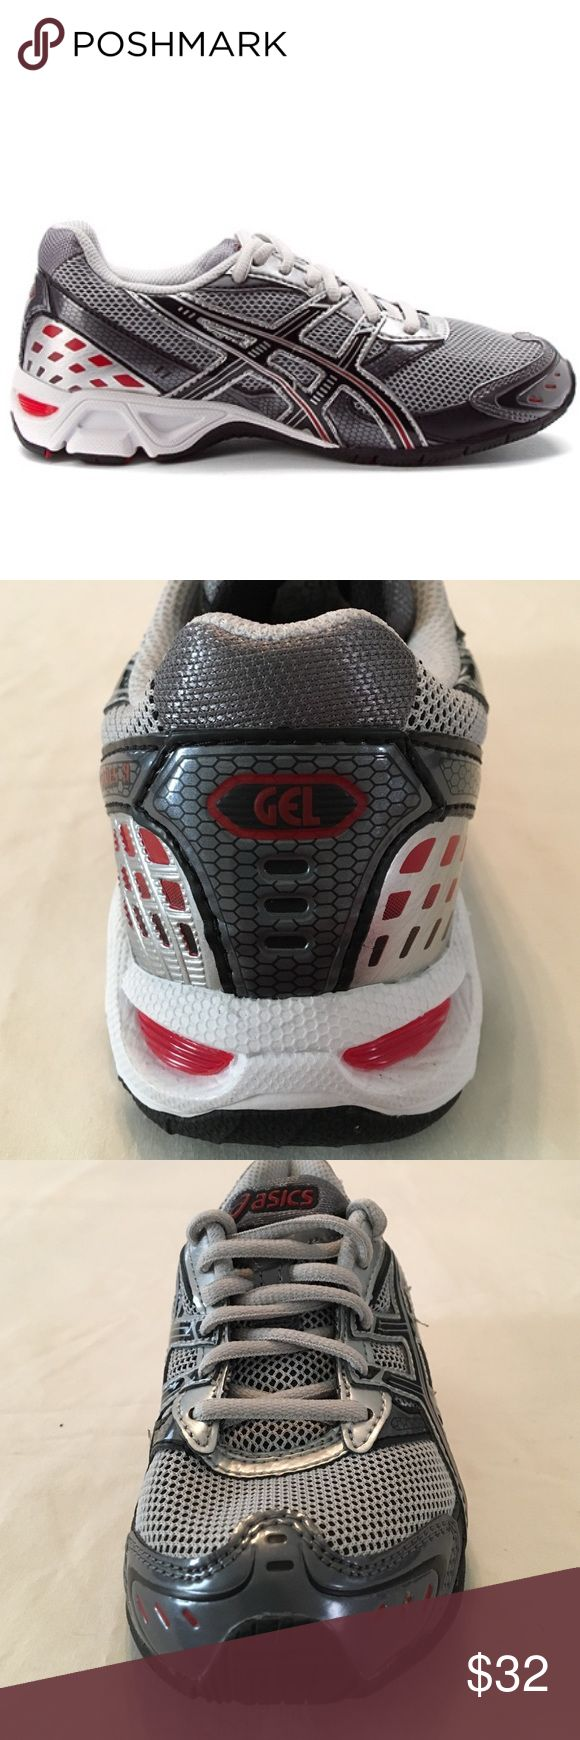 Asics GEL-Anteres Girls Athletic Shoe Size 1 Asics GEL-Anteres Girls Sporty Athletic Shoe, Size 1, air mesh upper with reinforced stitched toe, lightly worn, good condition Asics Shoes Sneakers